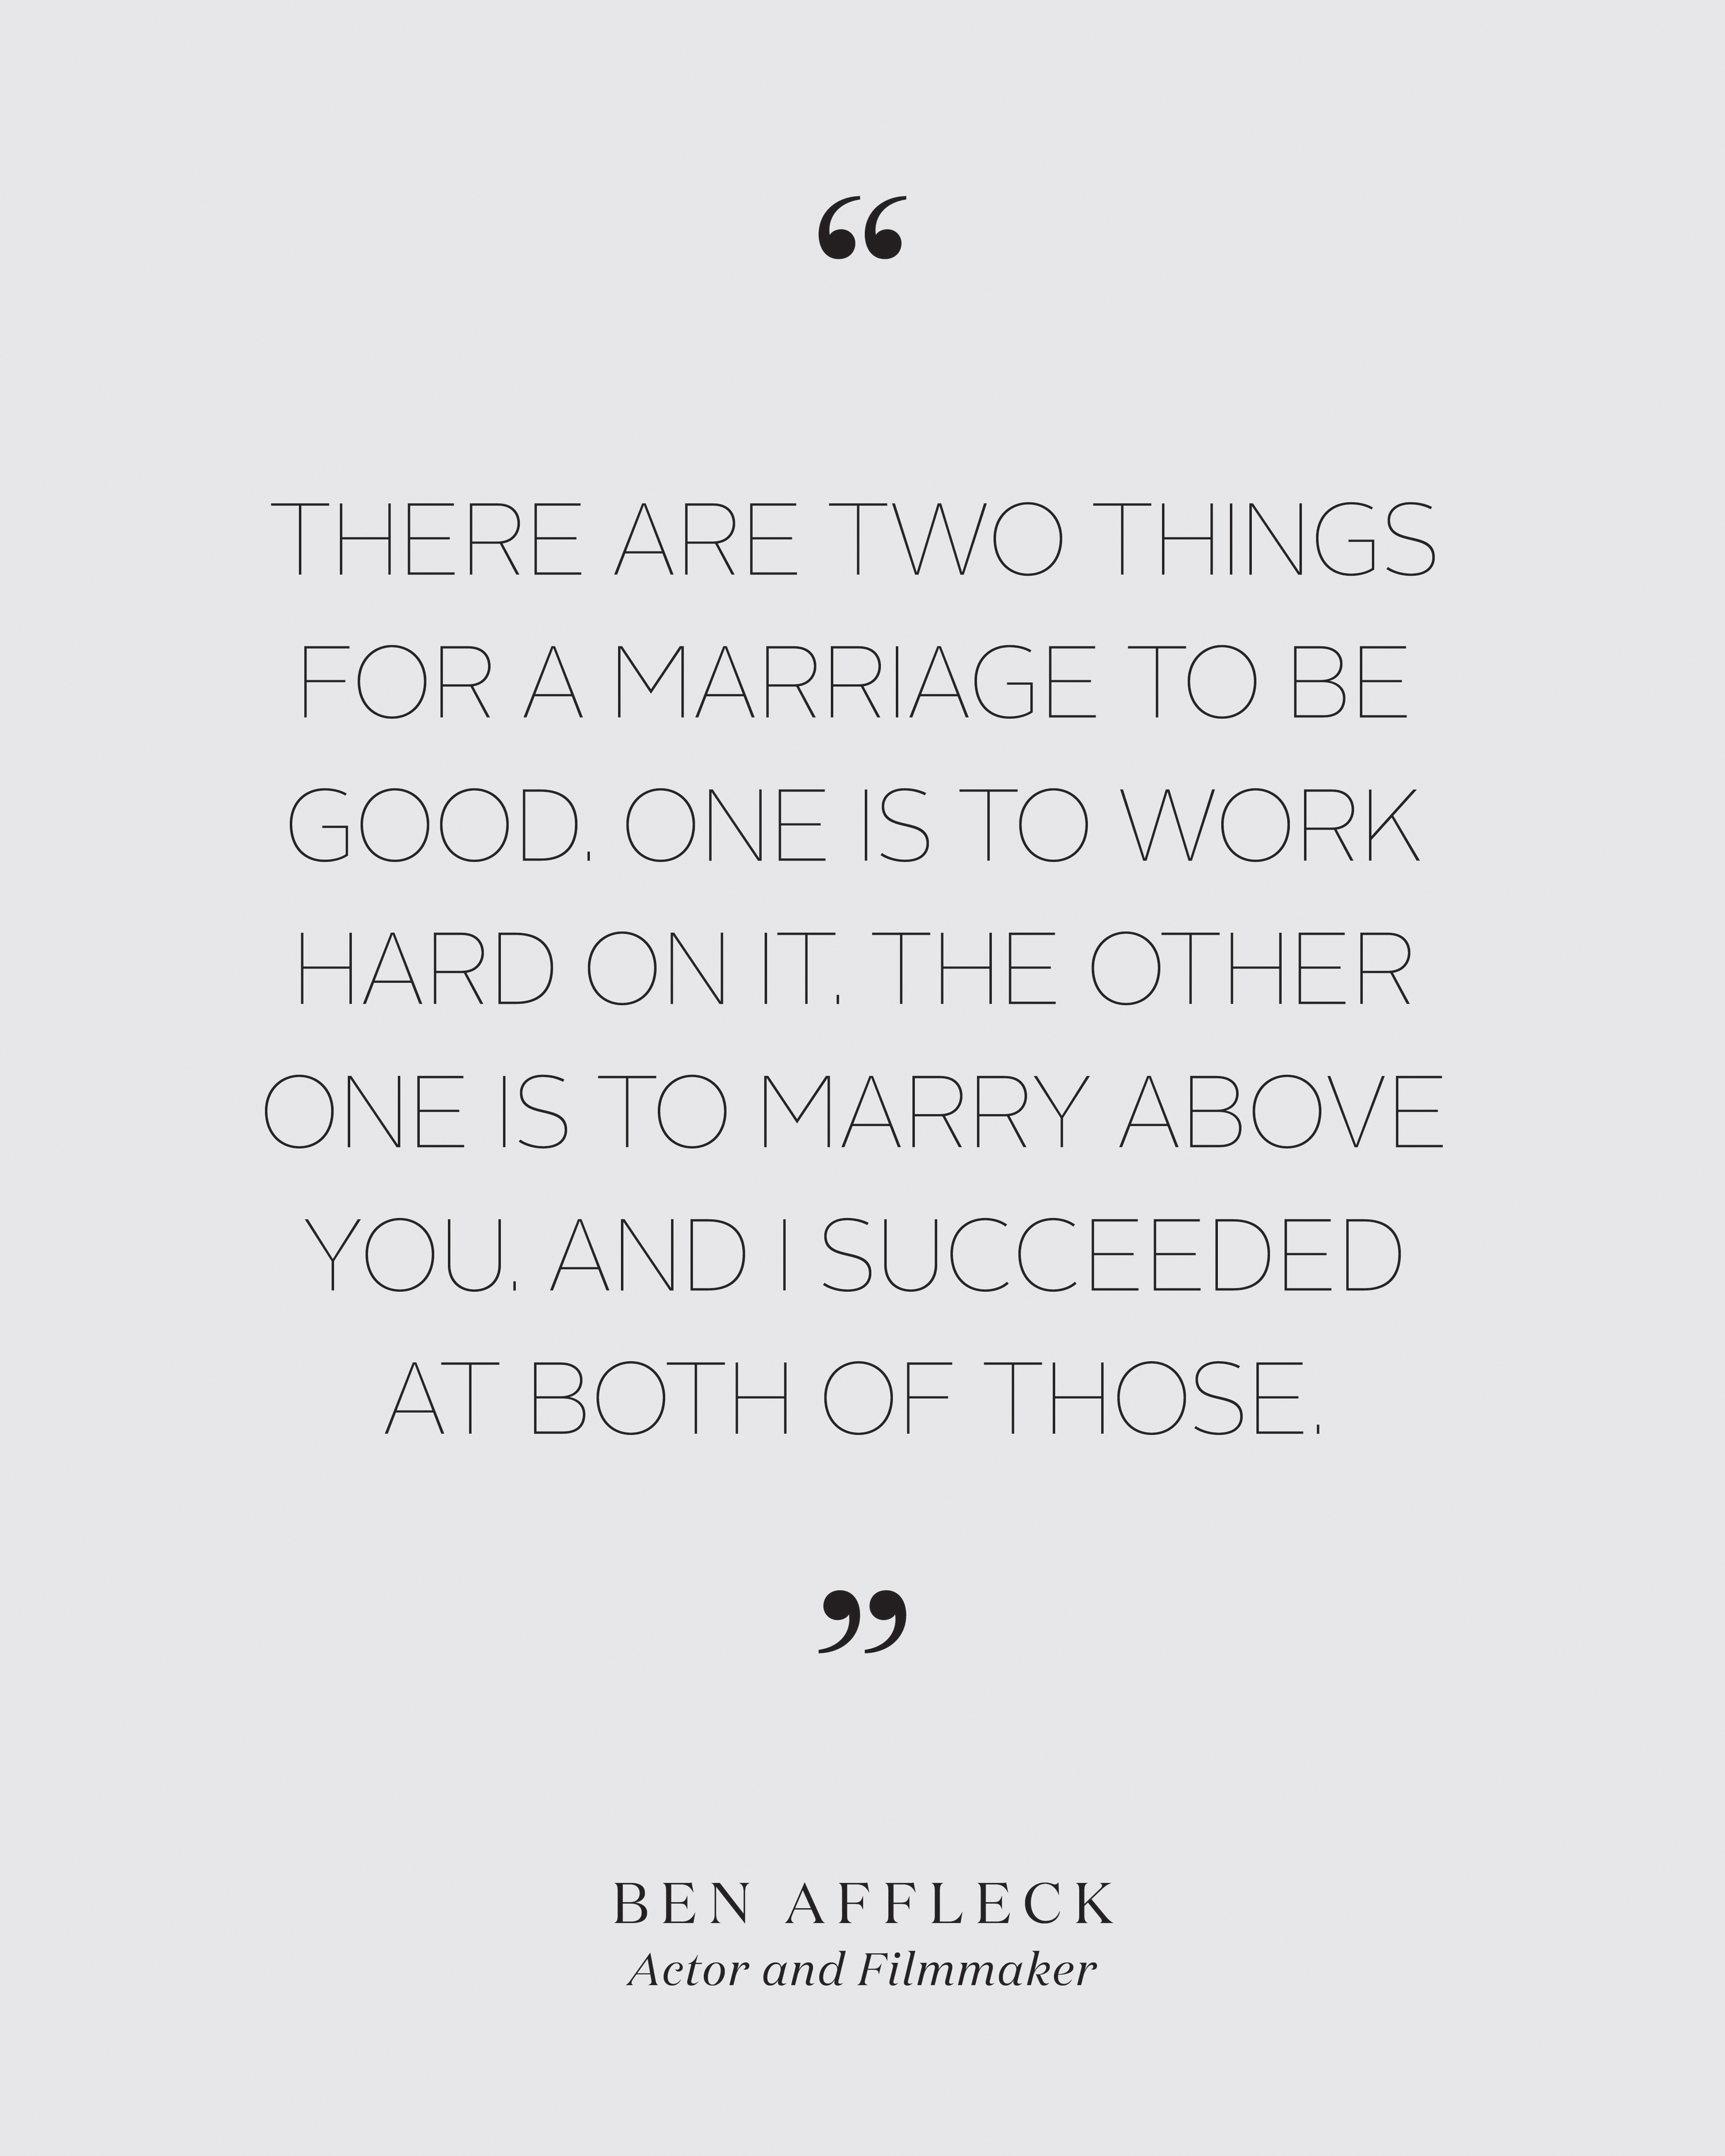 msw-wedding-quotes14-0315.jpg